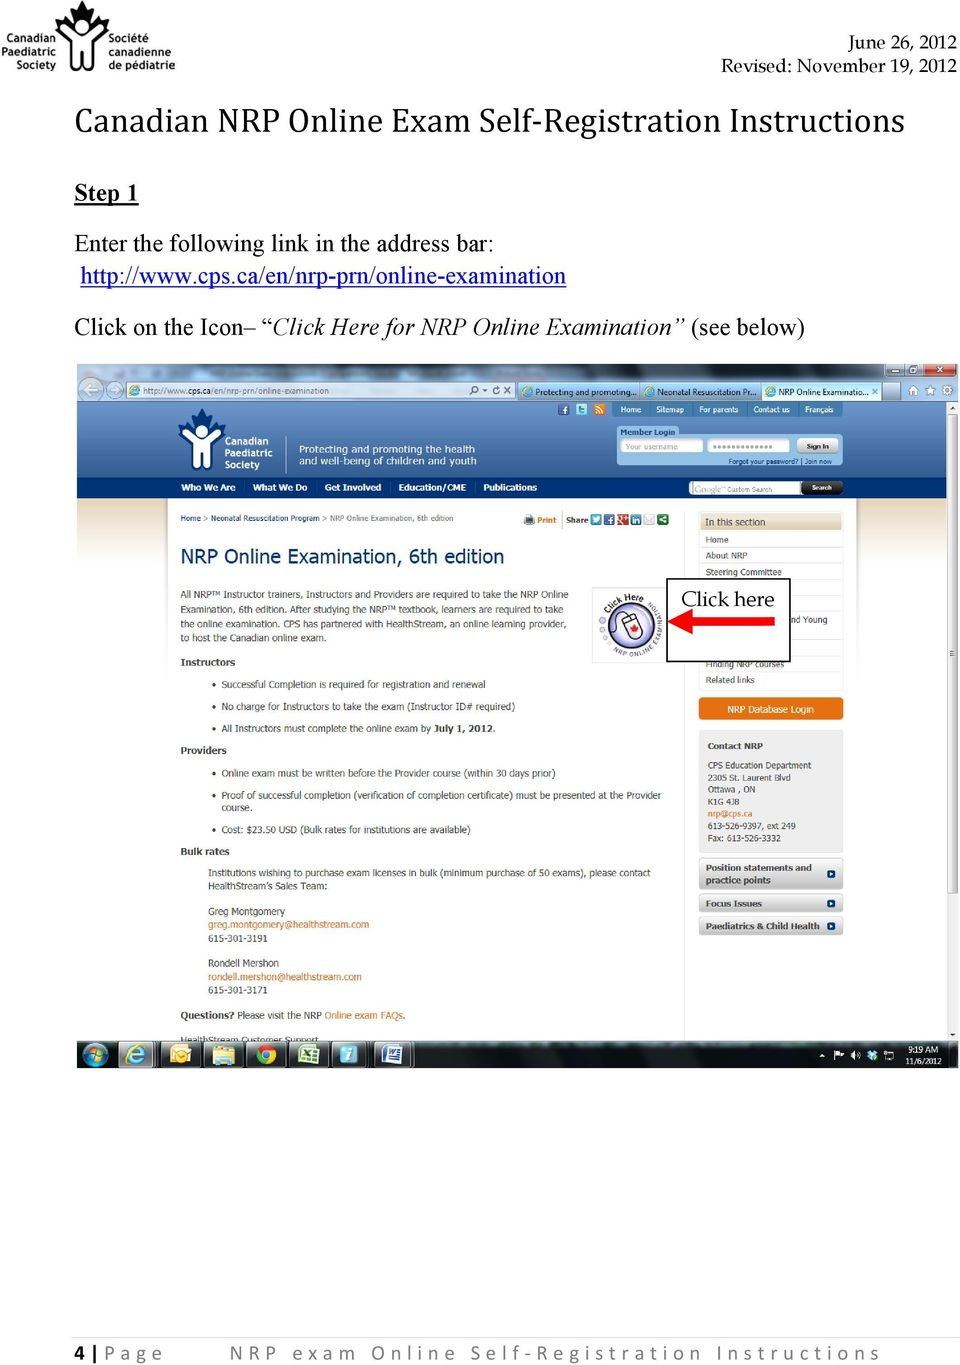 Canadian Nrp Online Exam Self Registration Instructions Pdf